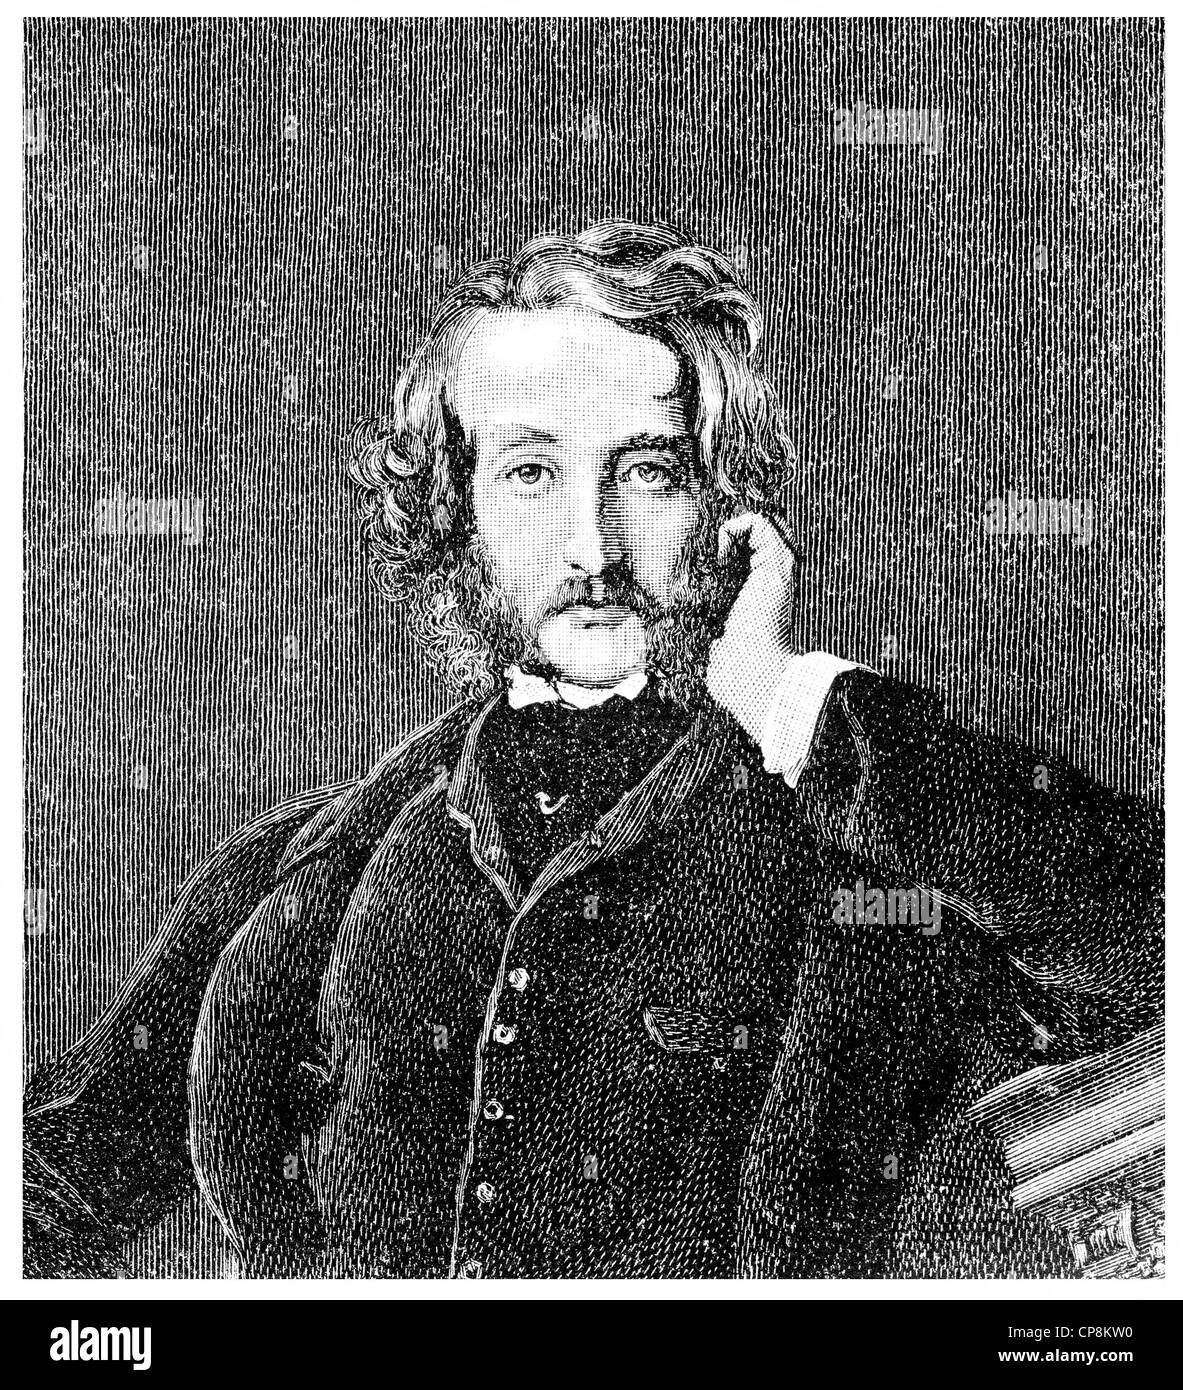 Edward George Earle Lytton Bulwer-Lytton, 1803 - 1873, an English politician, poet and playwright, Historische Zeichnung Stock Photo